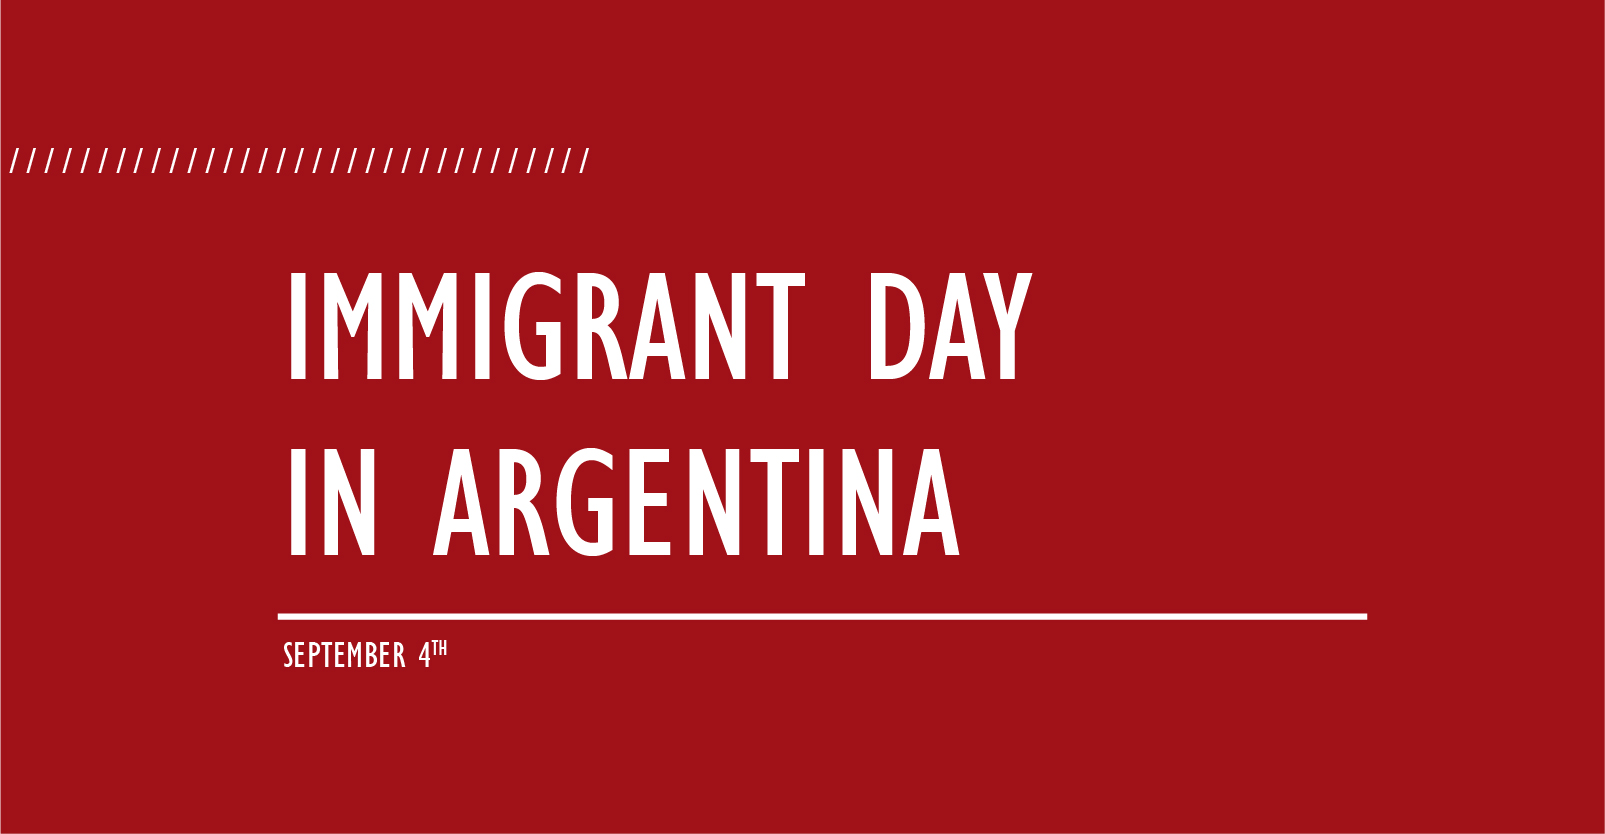 Immigrant Day in Argentina